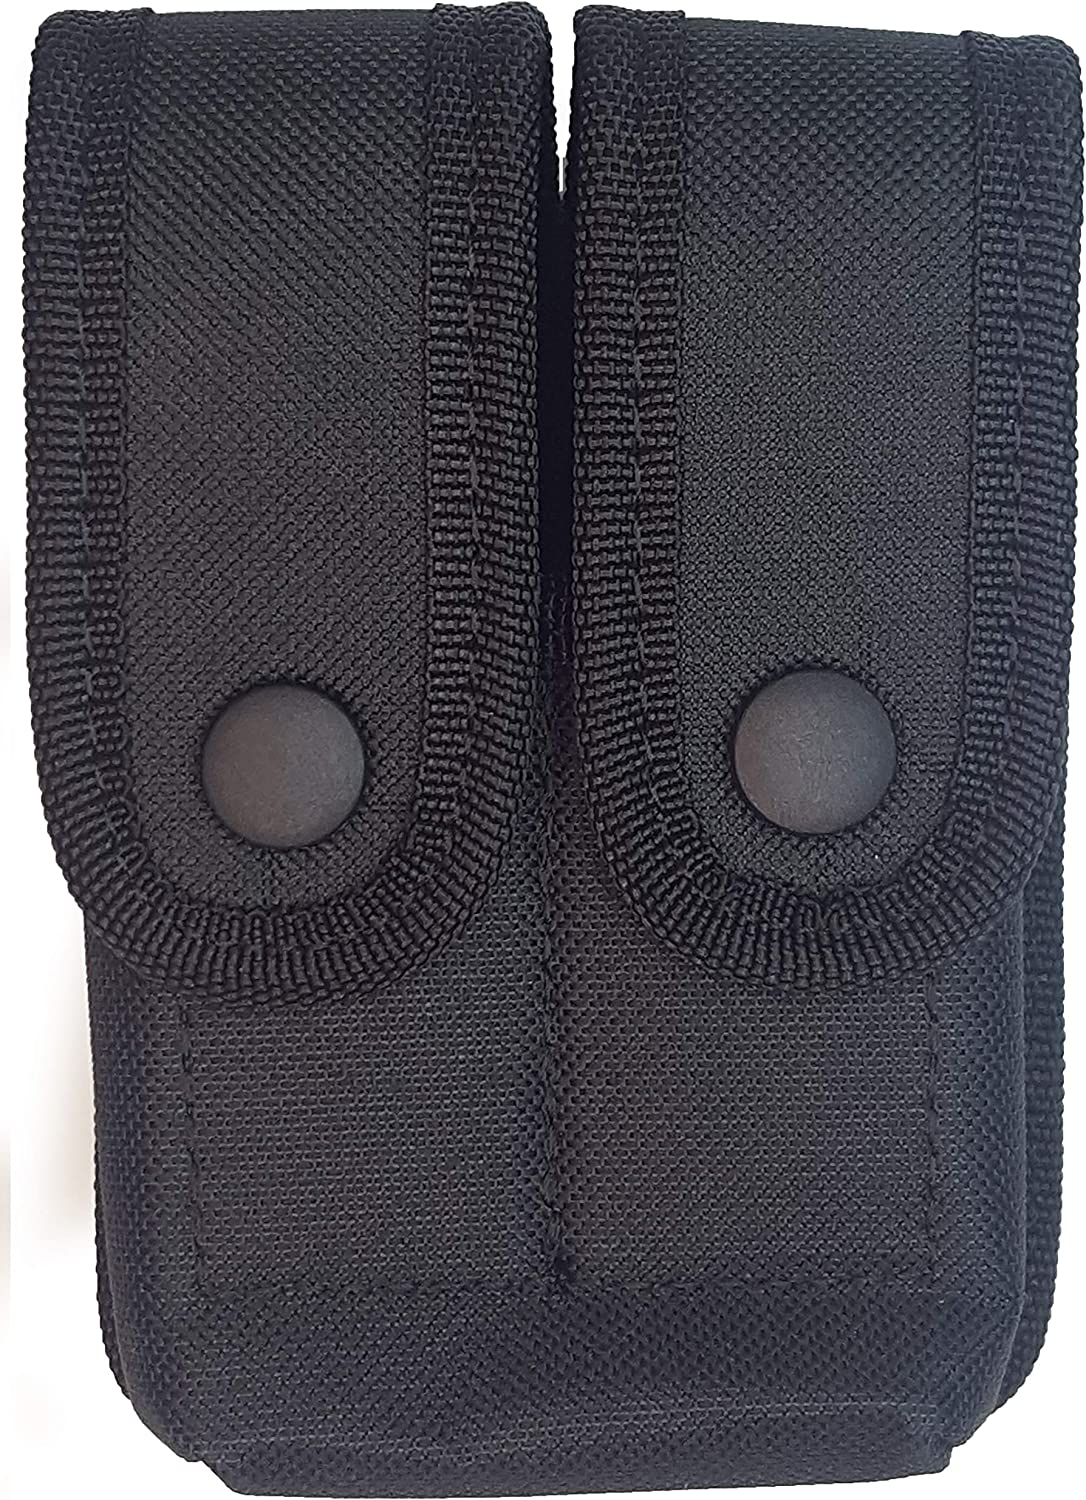 Double Divided Pistol Mag Pouch - Can Holder Gun Magazine Ammo Max 79% OFF 2021 model